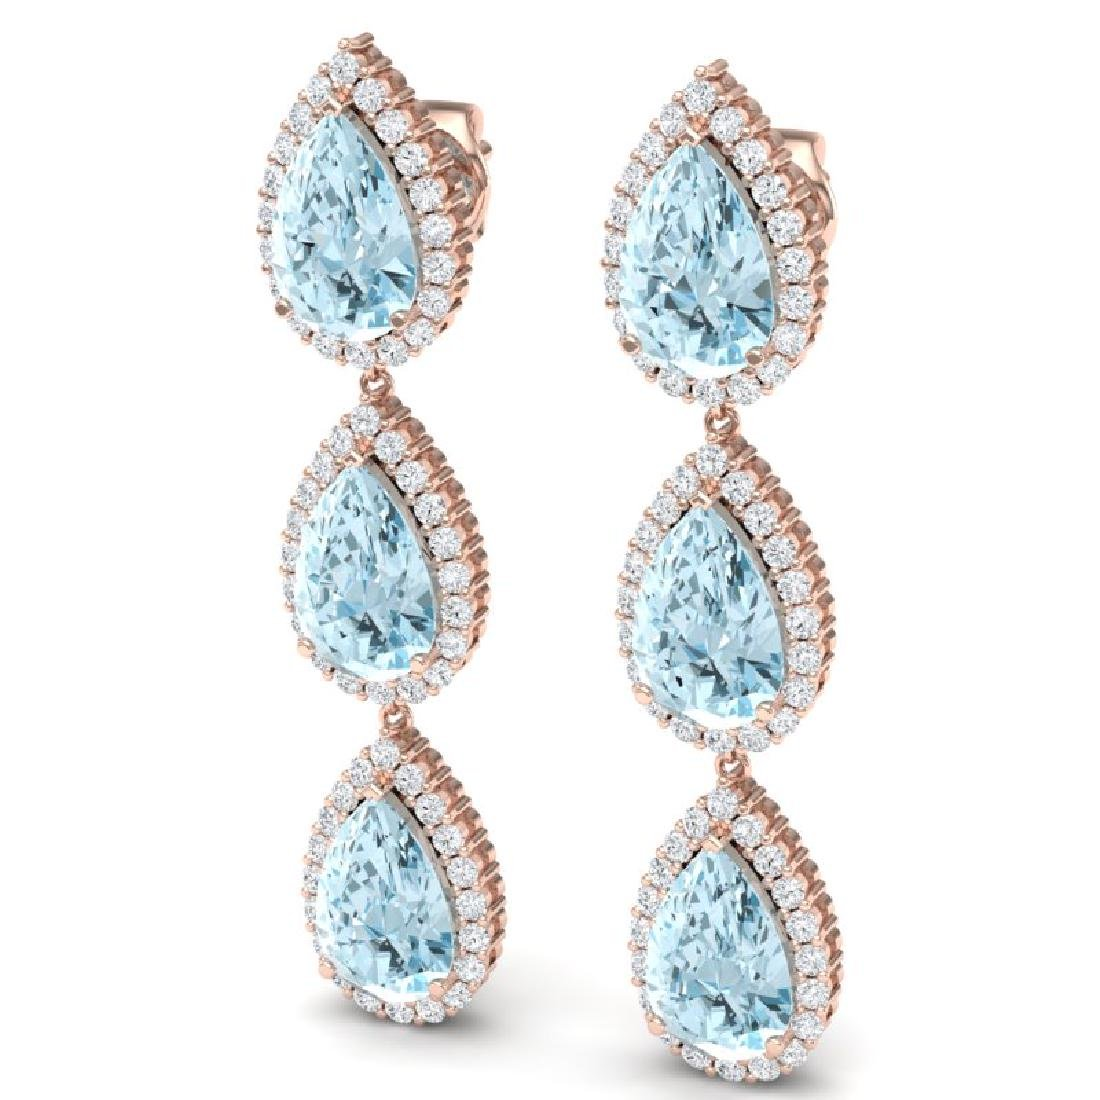 27.3 CTW Royalty Sky Topaz & VS Diamond Earrings 18K - 2